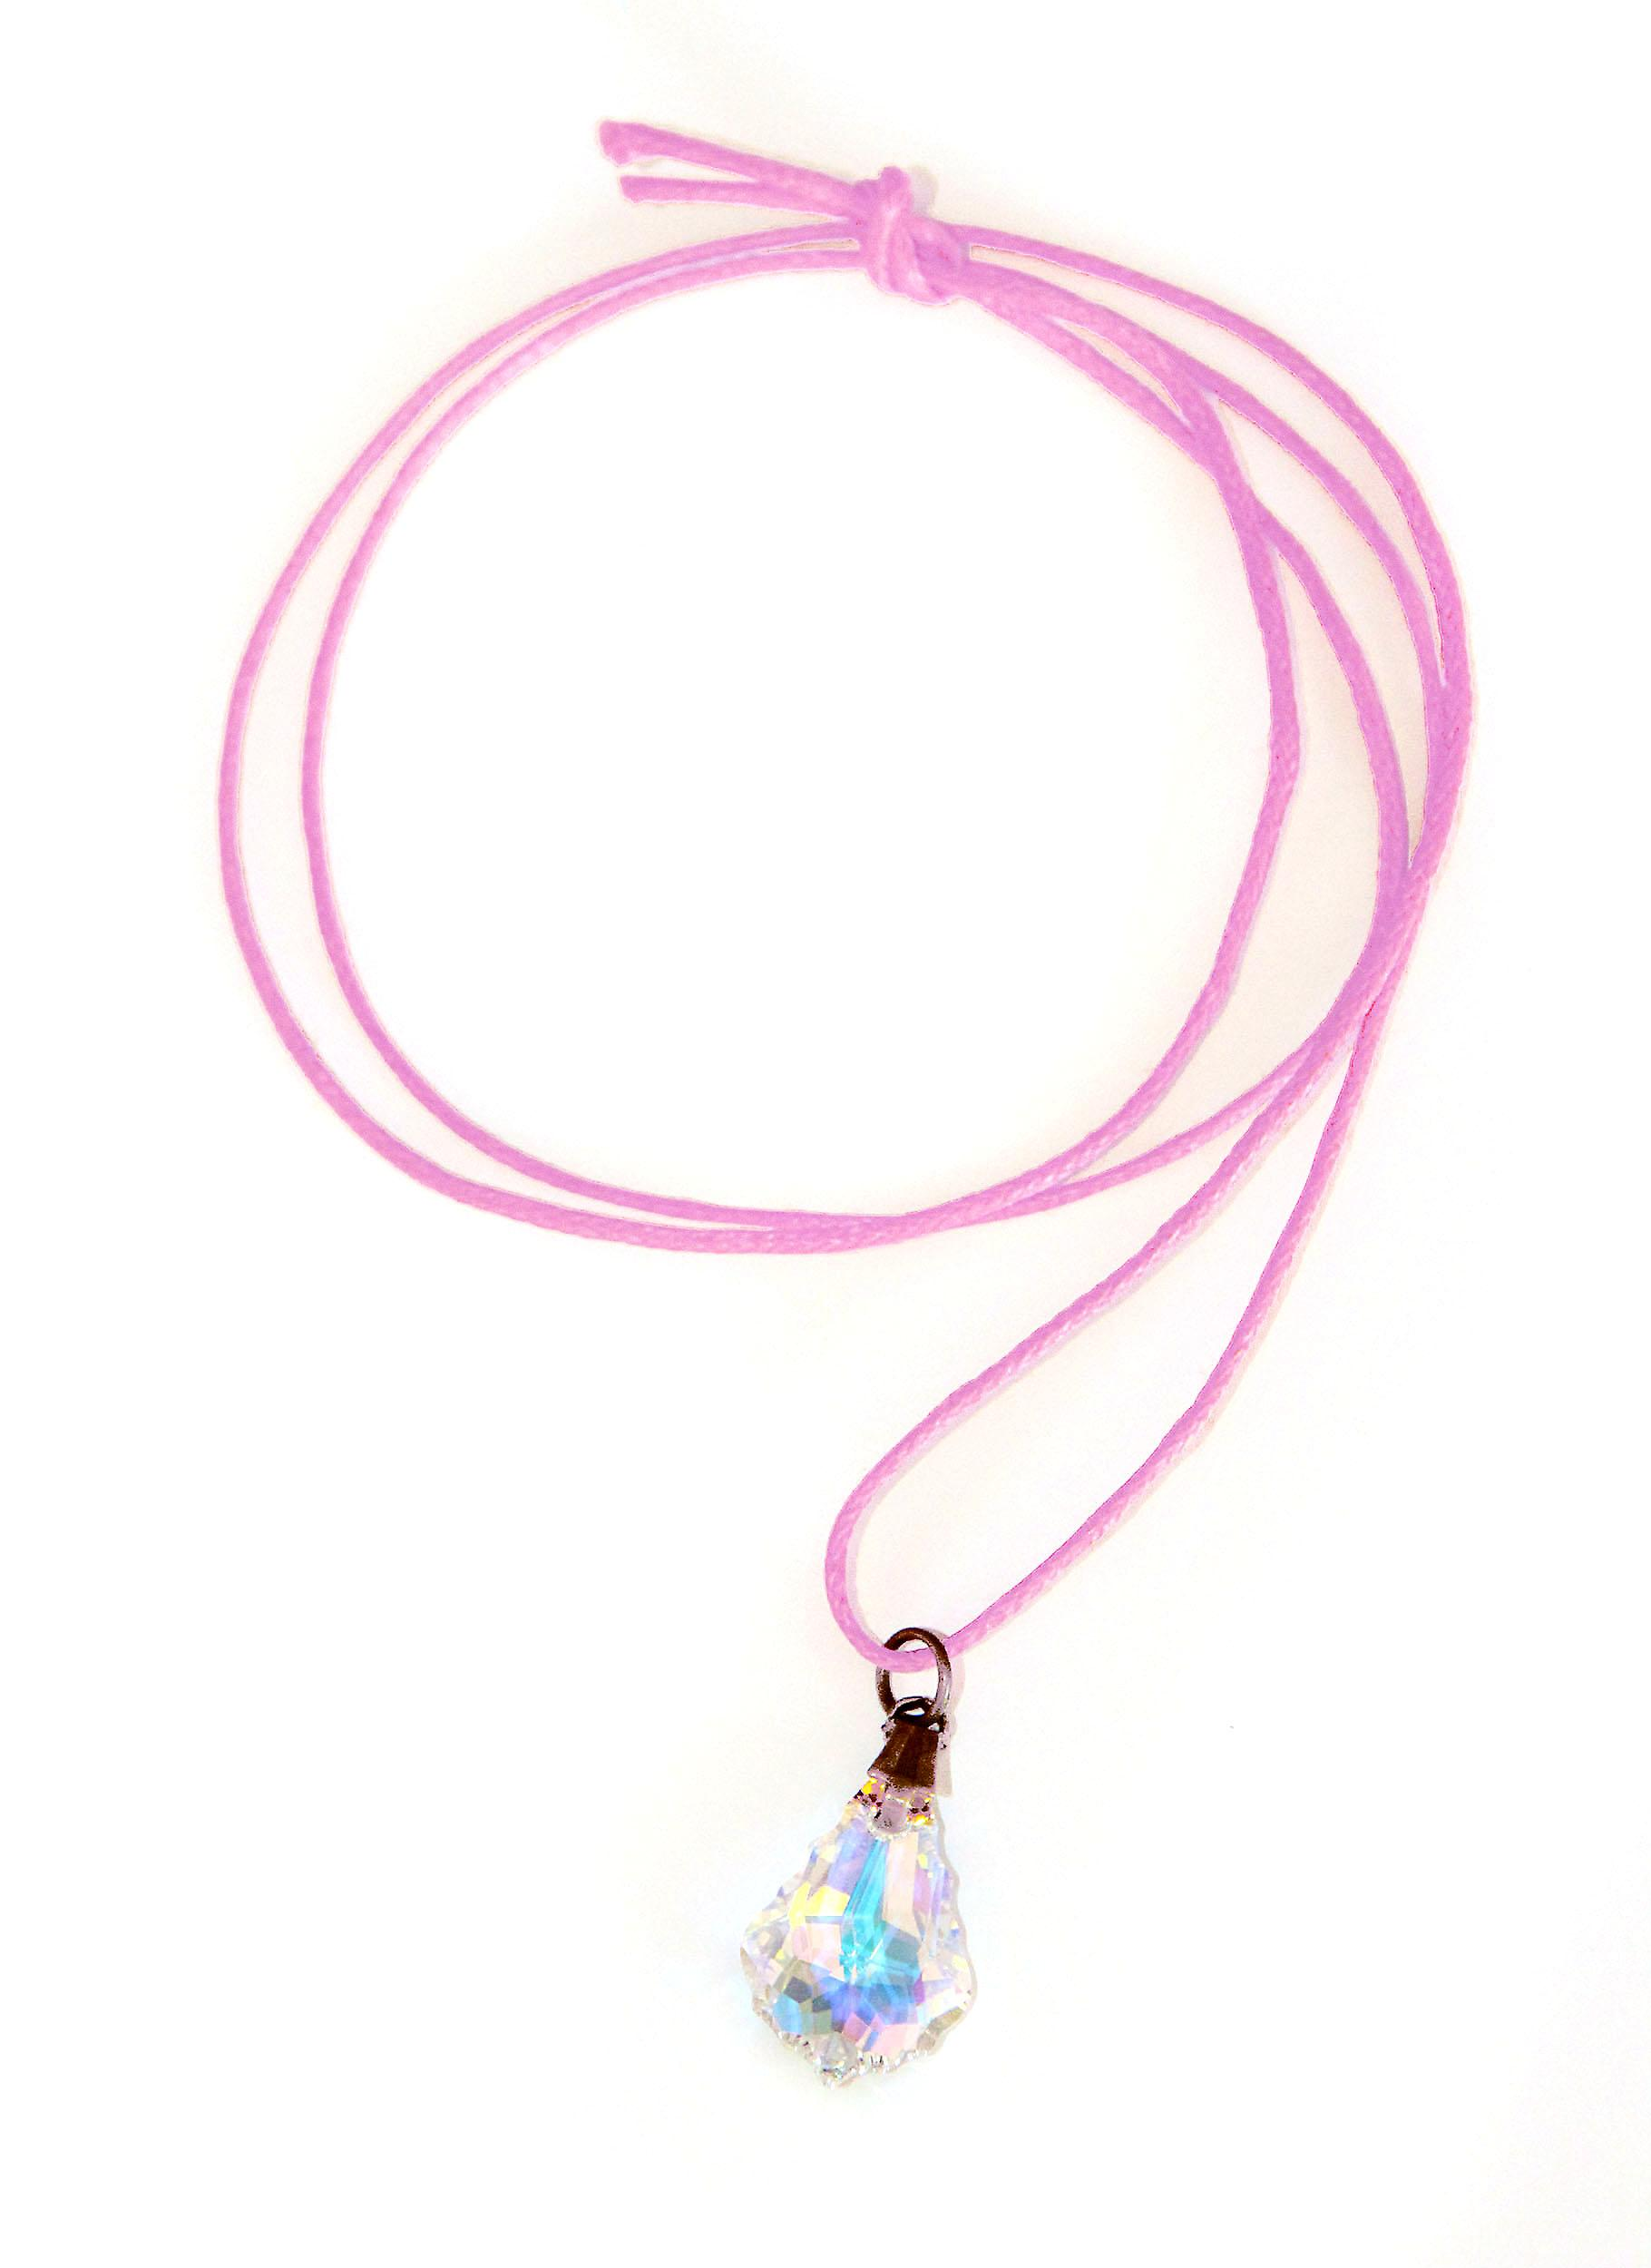 Waooh - Jewelry - Swarovski / Pendant tear reflection blue pearl and waxed cord